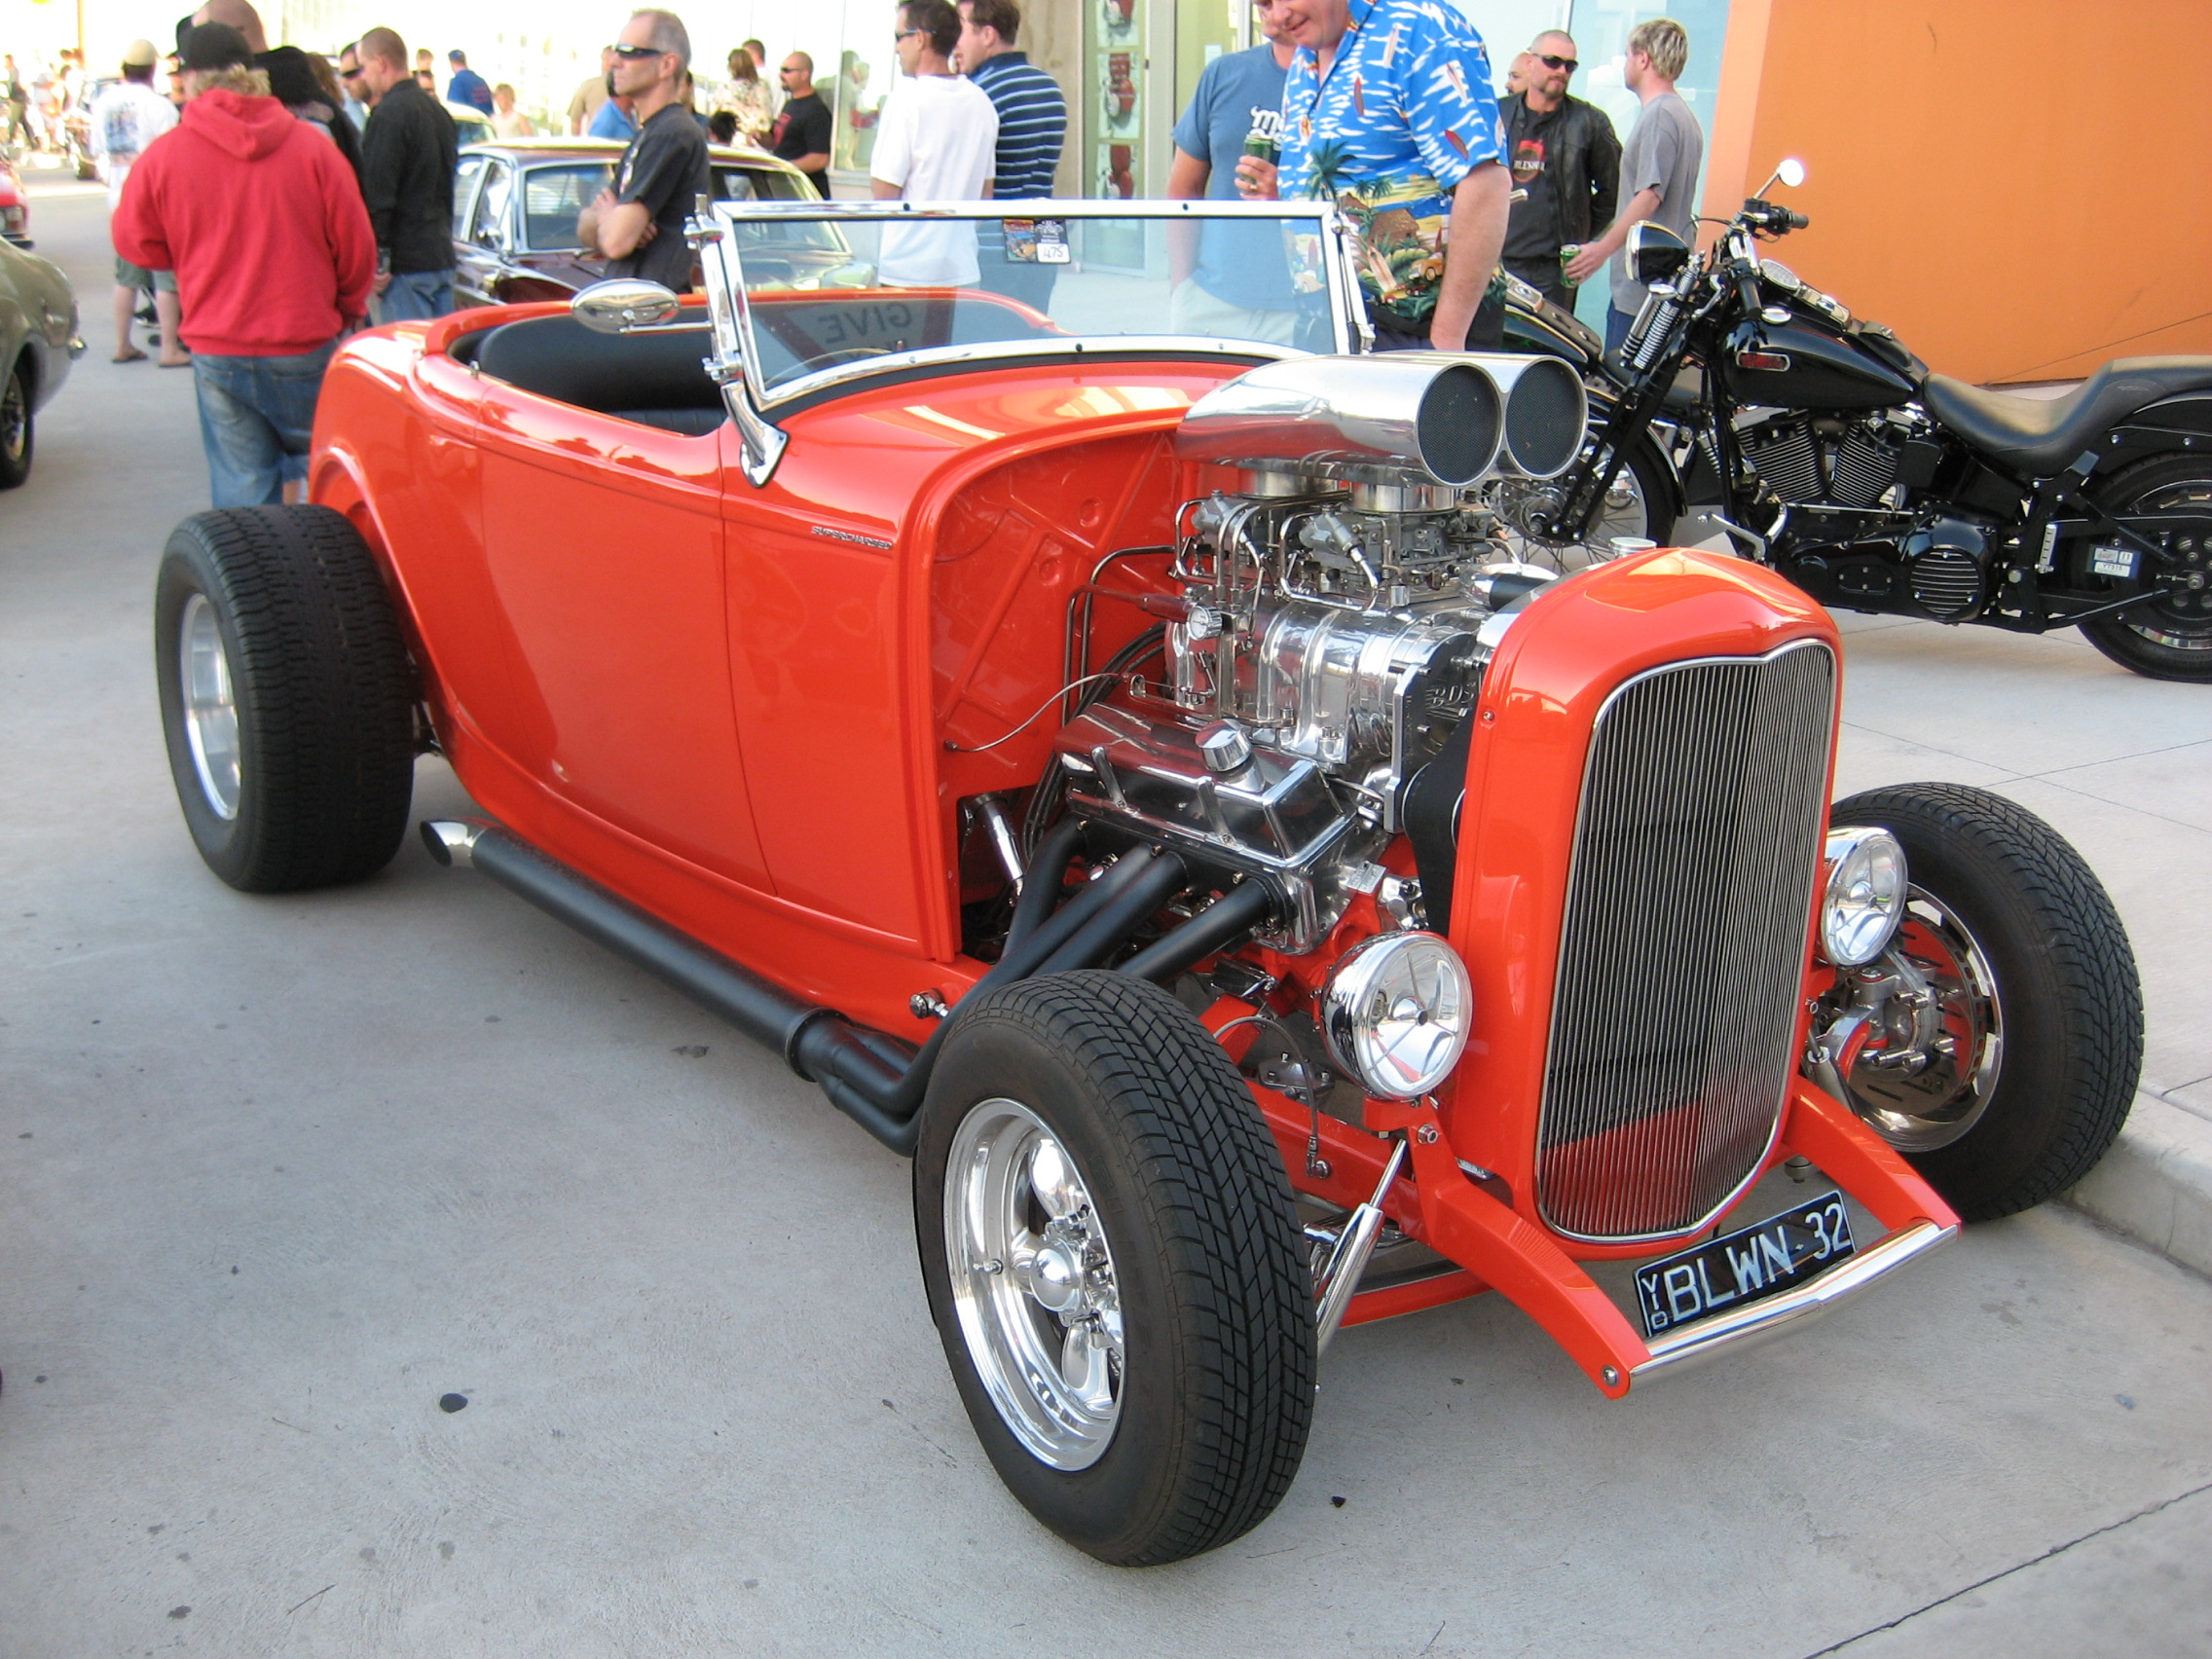 File:1932 Ford Roadster Hot Rod.jpg - Wikimedia Commons